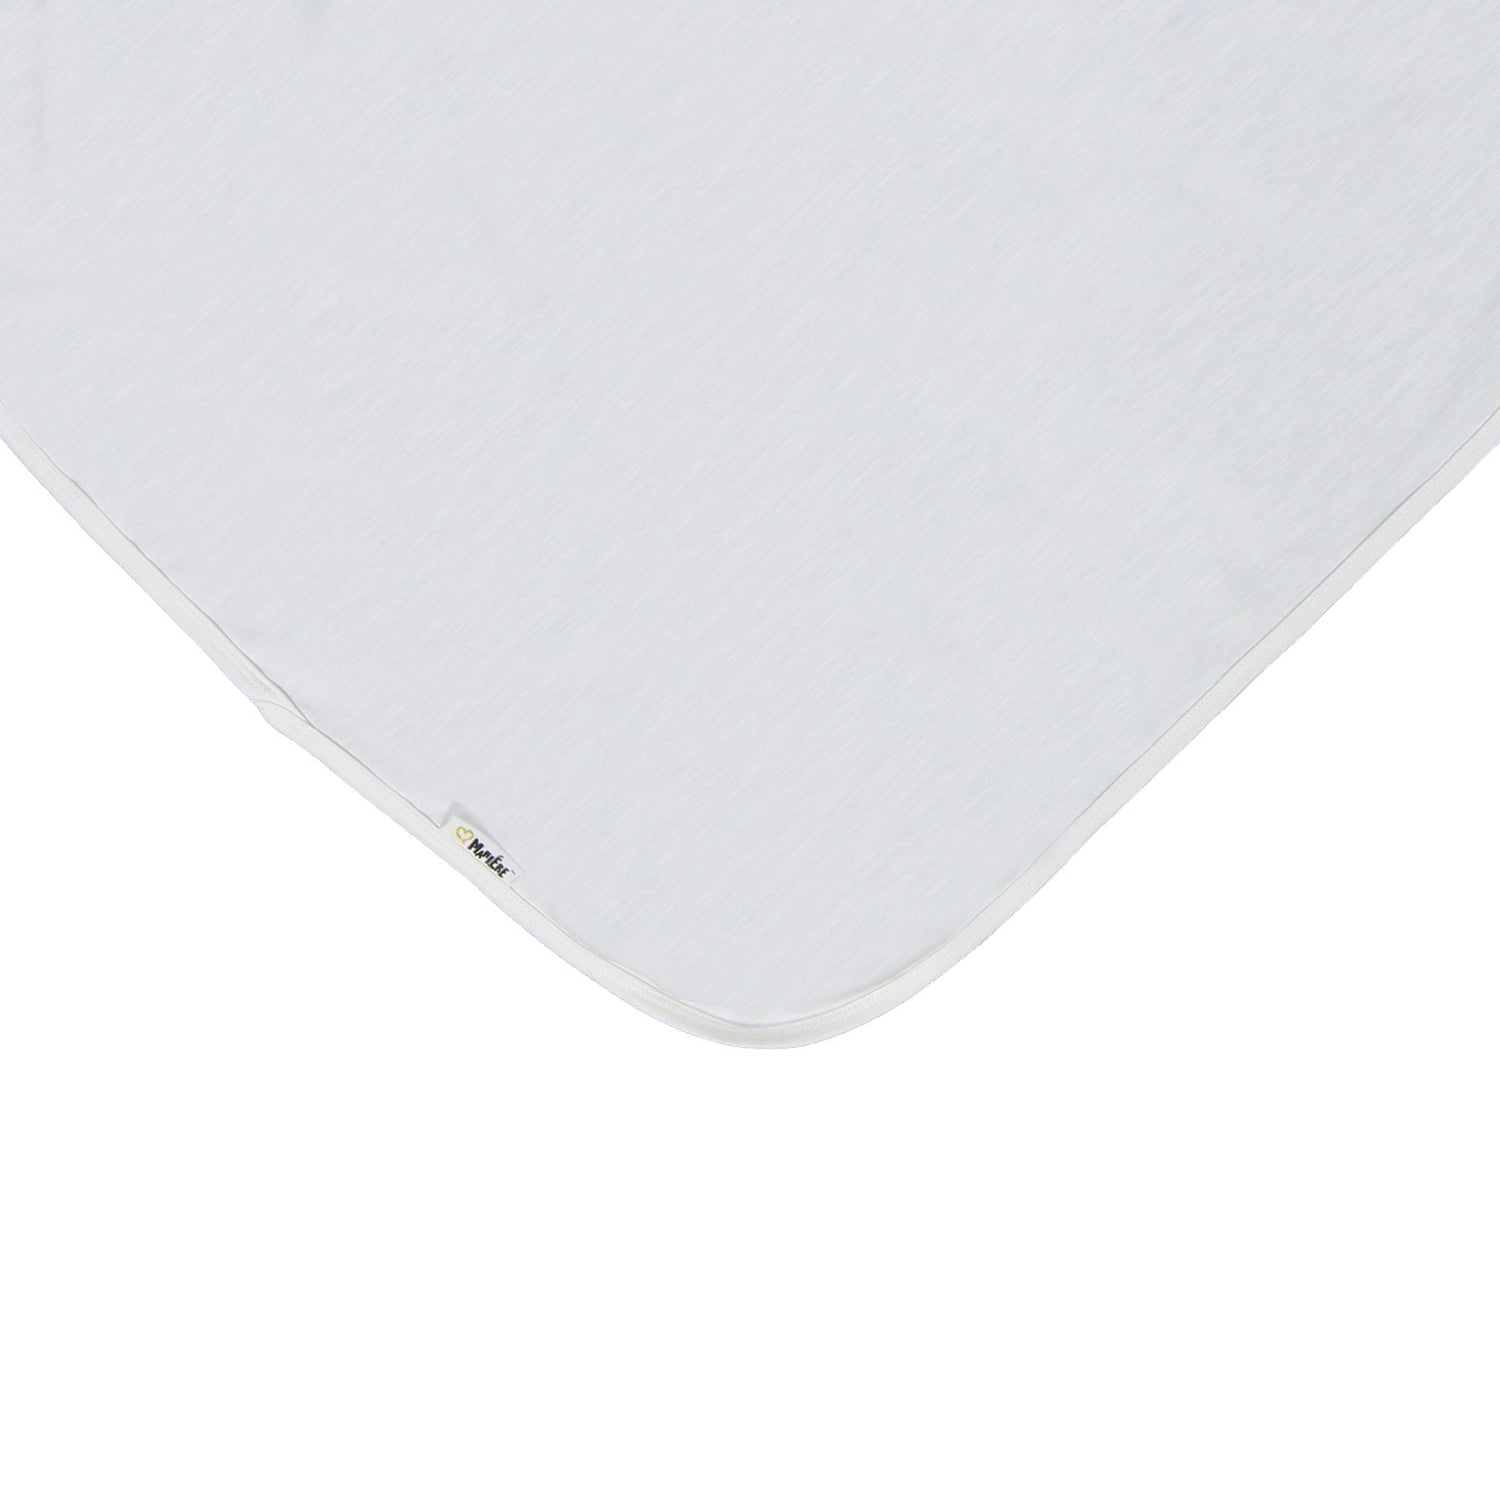 Chest Ruffle Blanket Maniere Accessories White